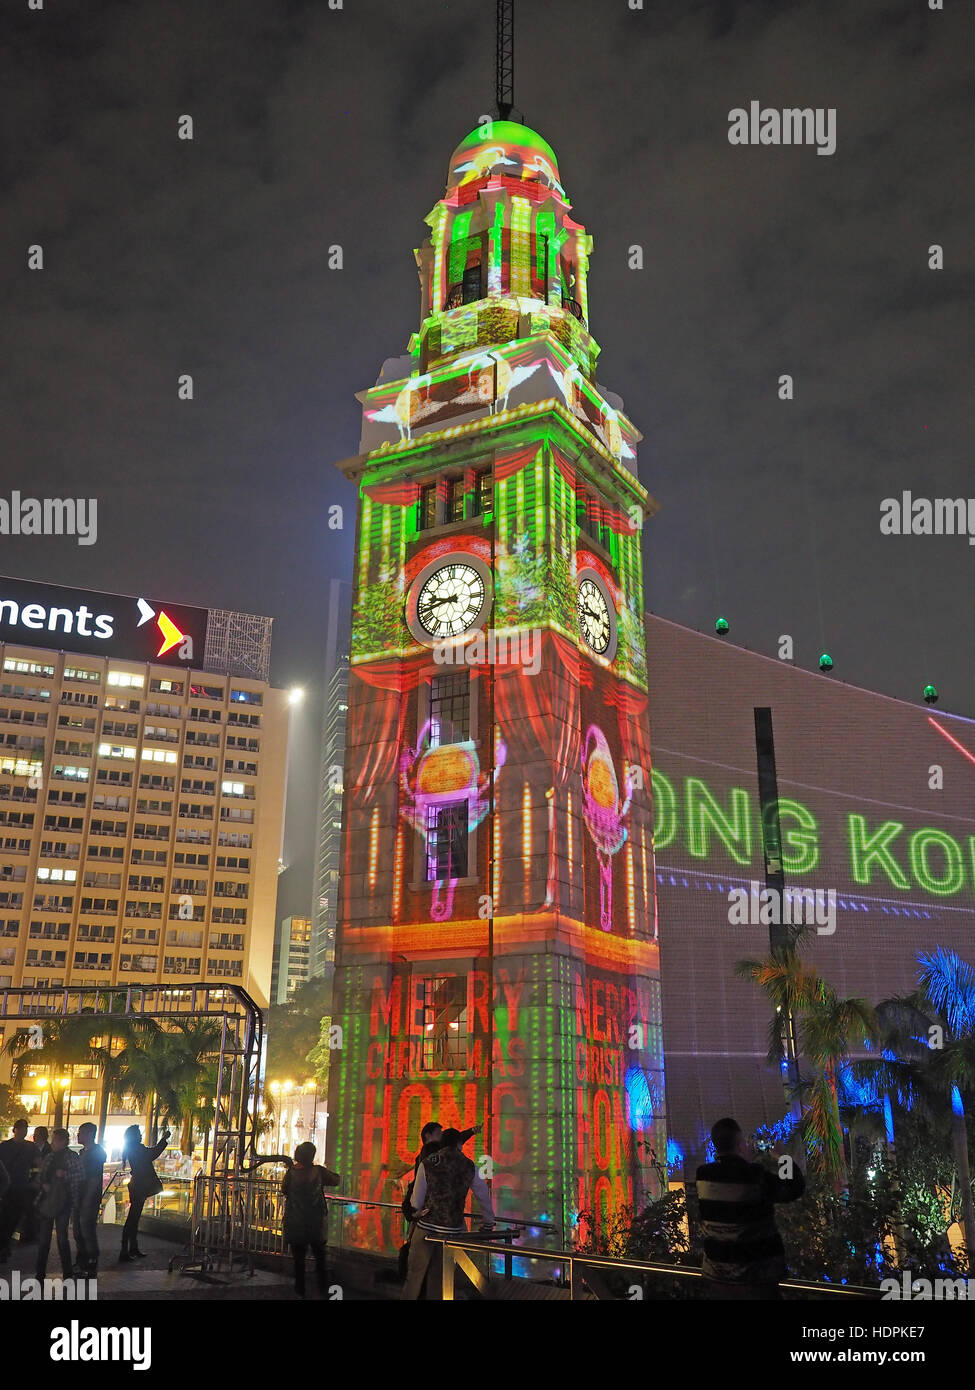 3D Light Show view of the kowloon clock tower during the hong kong pulse 3d